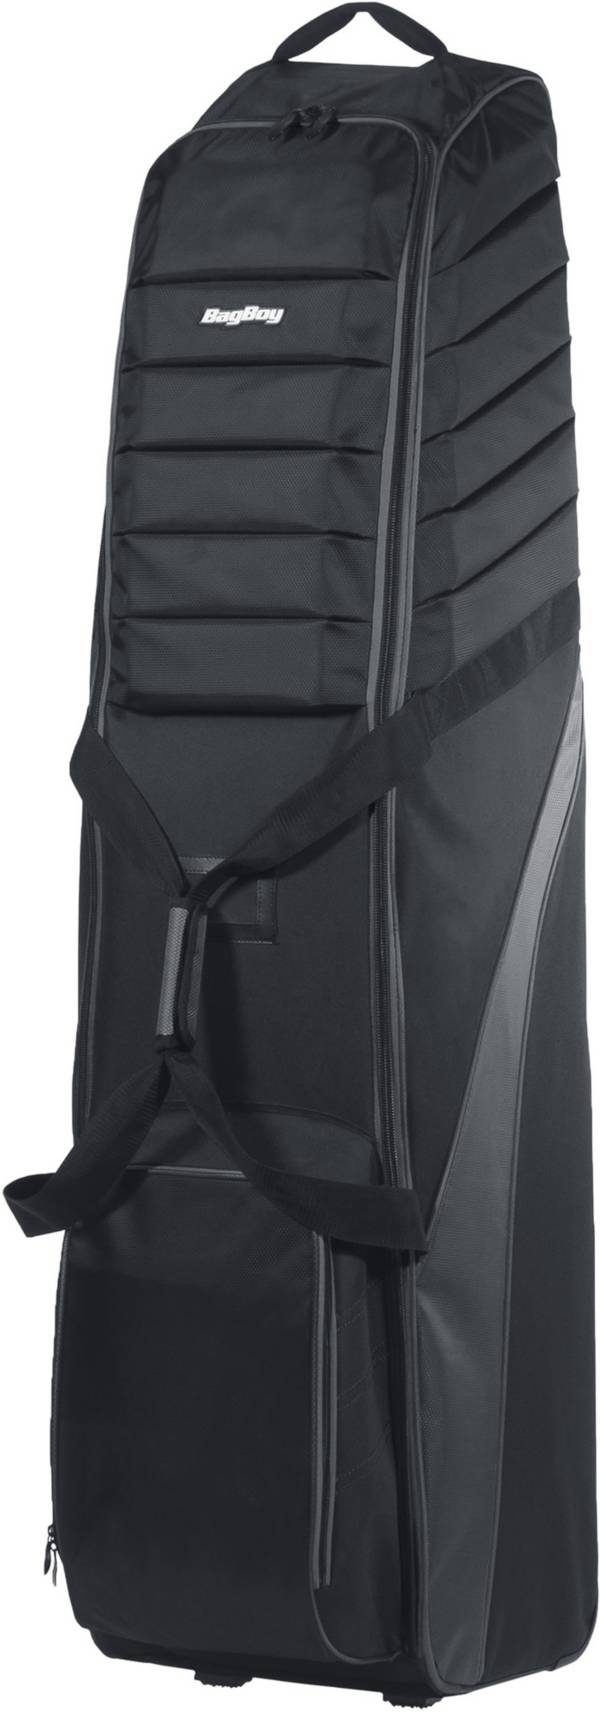 Bag Boy 2021 T-750 Travel Cover product image